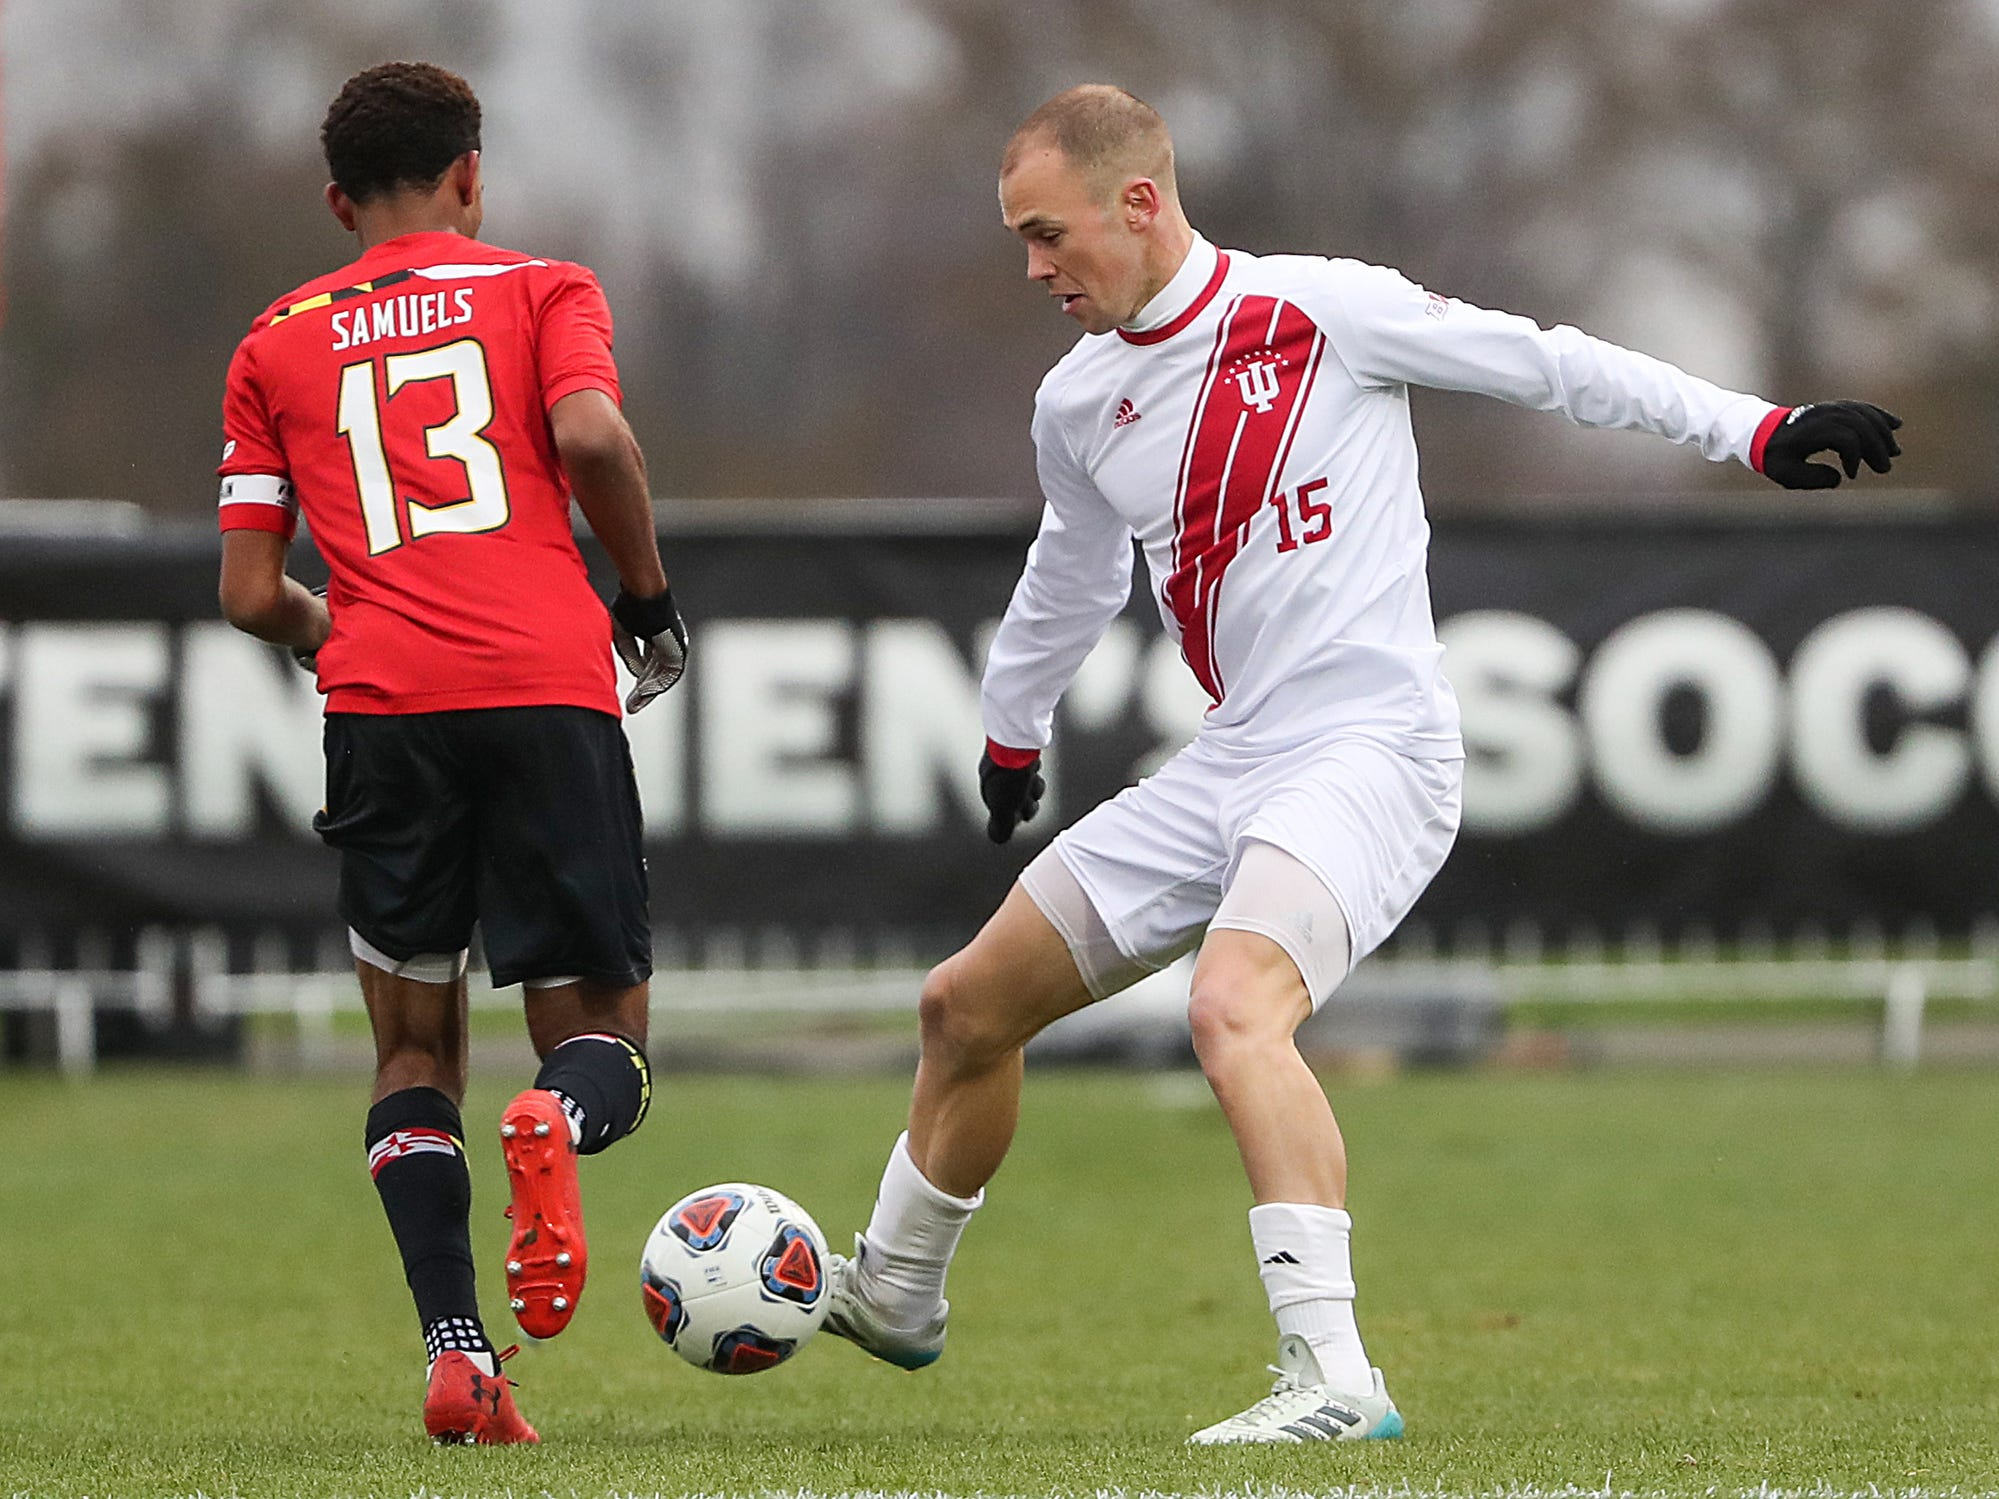 Maryland Terrapins Andrew Samuels (13) defends against Indiana Hoosiers Andrew Gutman (15) during the first half of Big Ten semifinals at Grand Park in Westfield, Ind., Friday, Nov. 9, 2018. Indiana and Maryland tied 1-1, with the Hoosiers advancing in penalty kicks, 4-3.